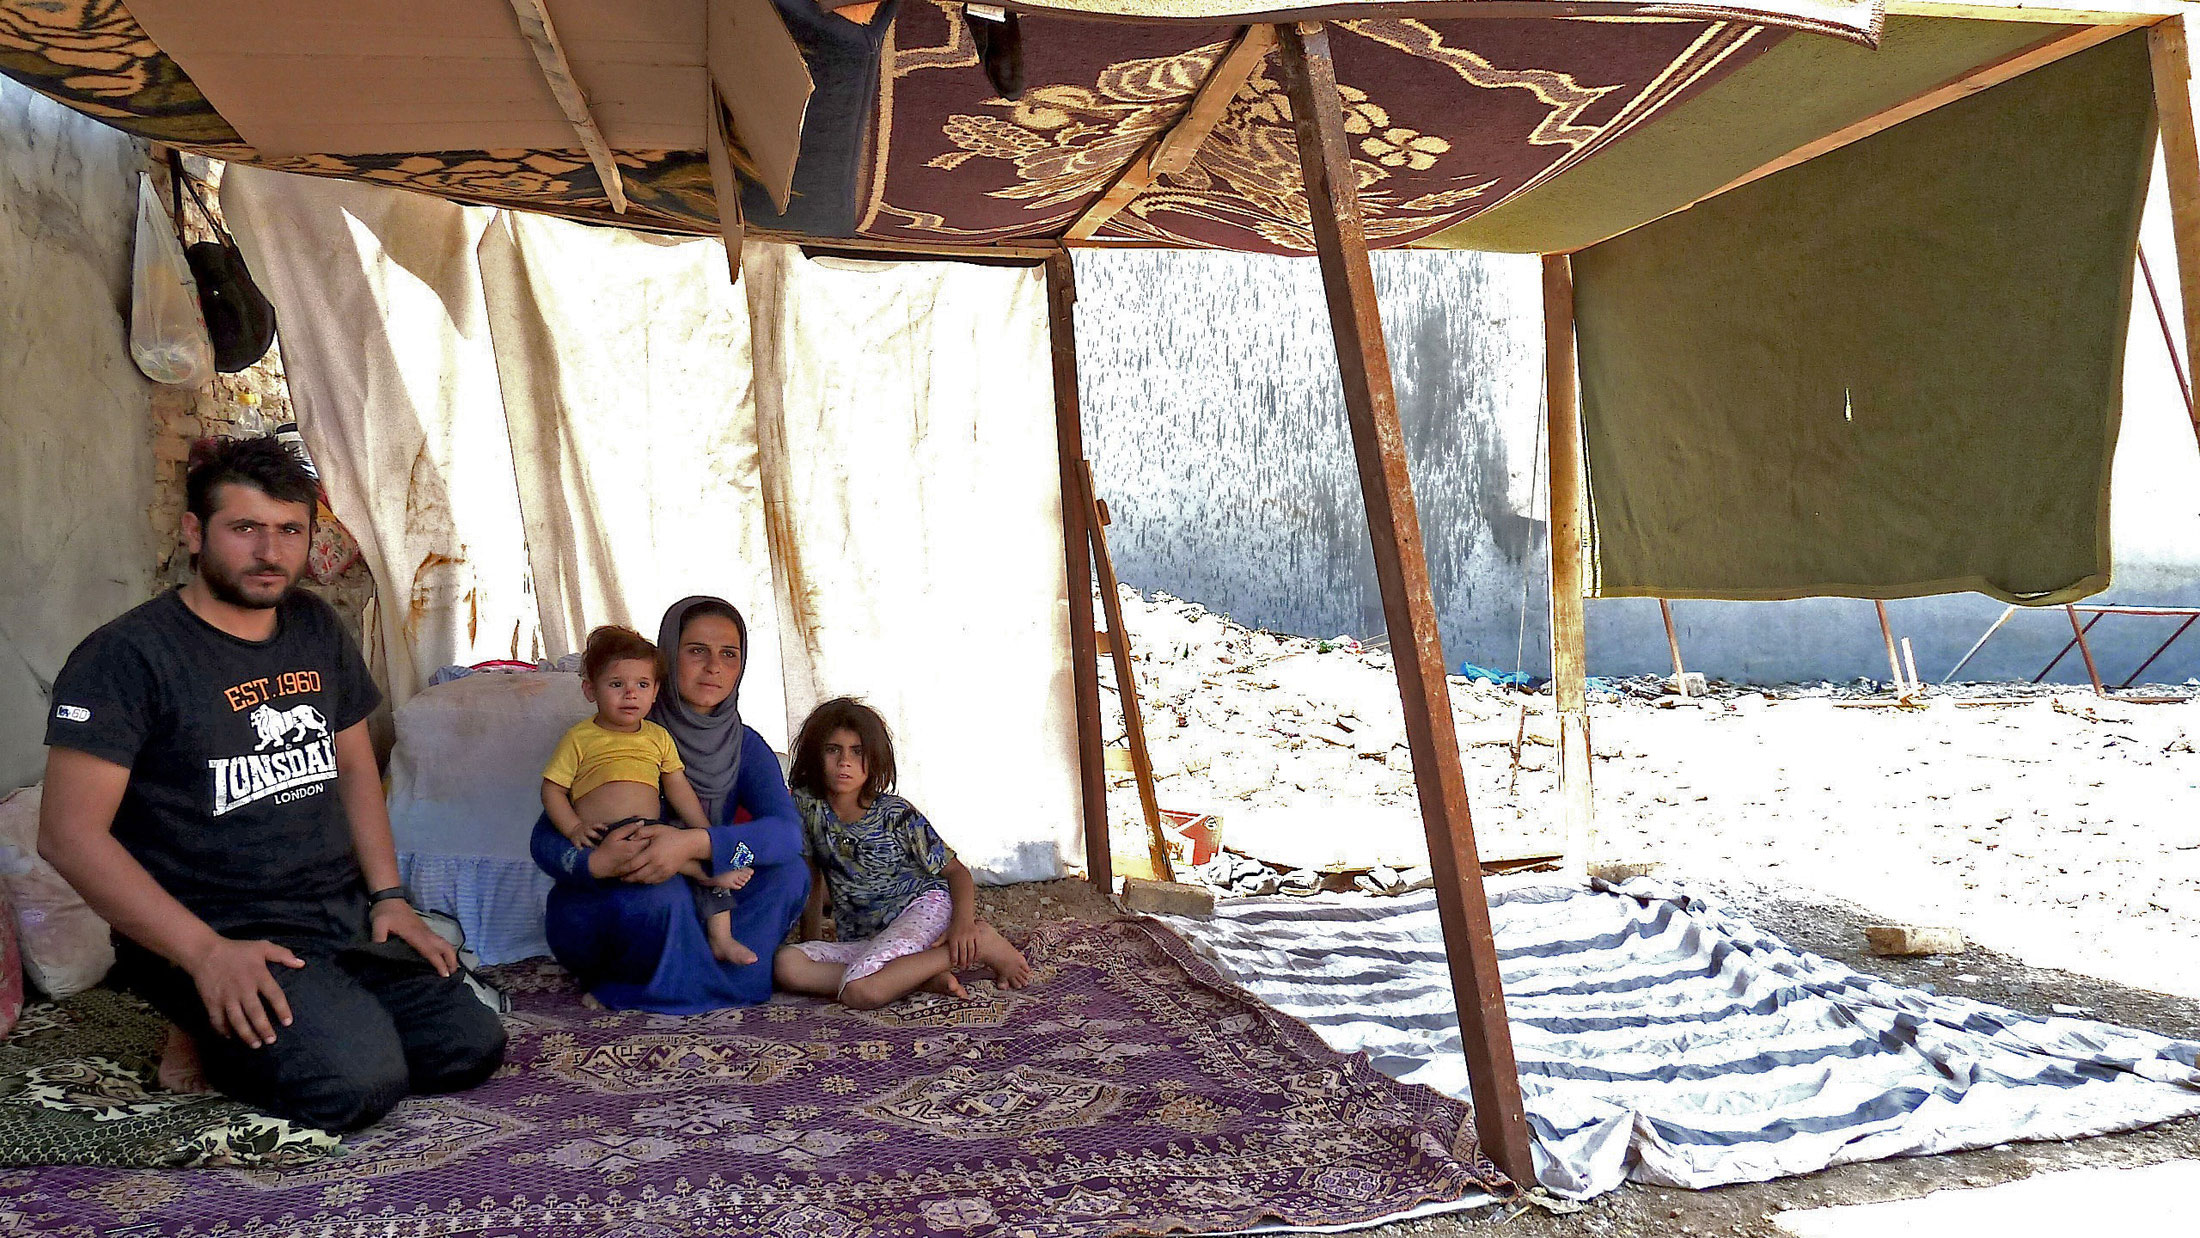 Syrian refugee Mohammed Hassan, 24, with his wife Guzel, 22, and their children in a make-shift tent on Shoresh Road in Erbil, the capital of the semi-autonomous Kurdish region of Iraq. Iraqi Kurdistan is sheltering 95 percent of the 161,000 Syrian refuge